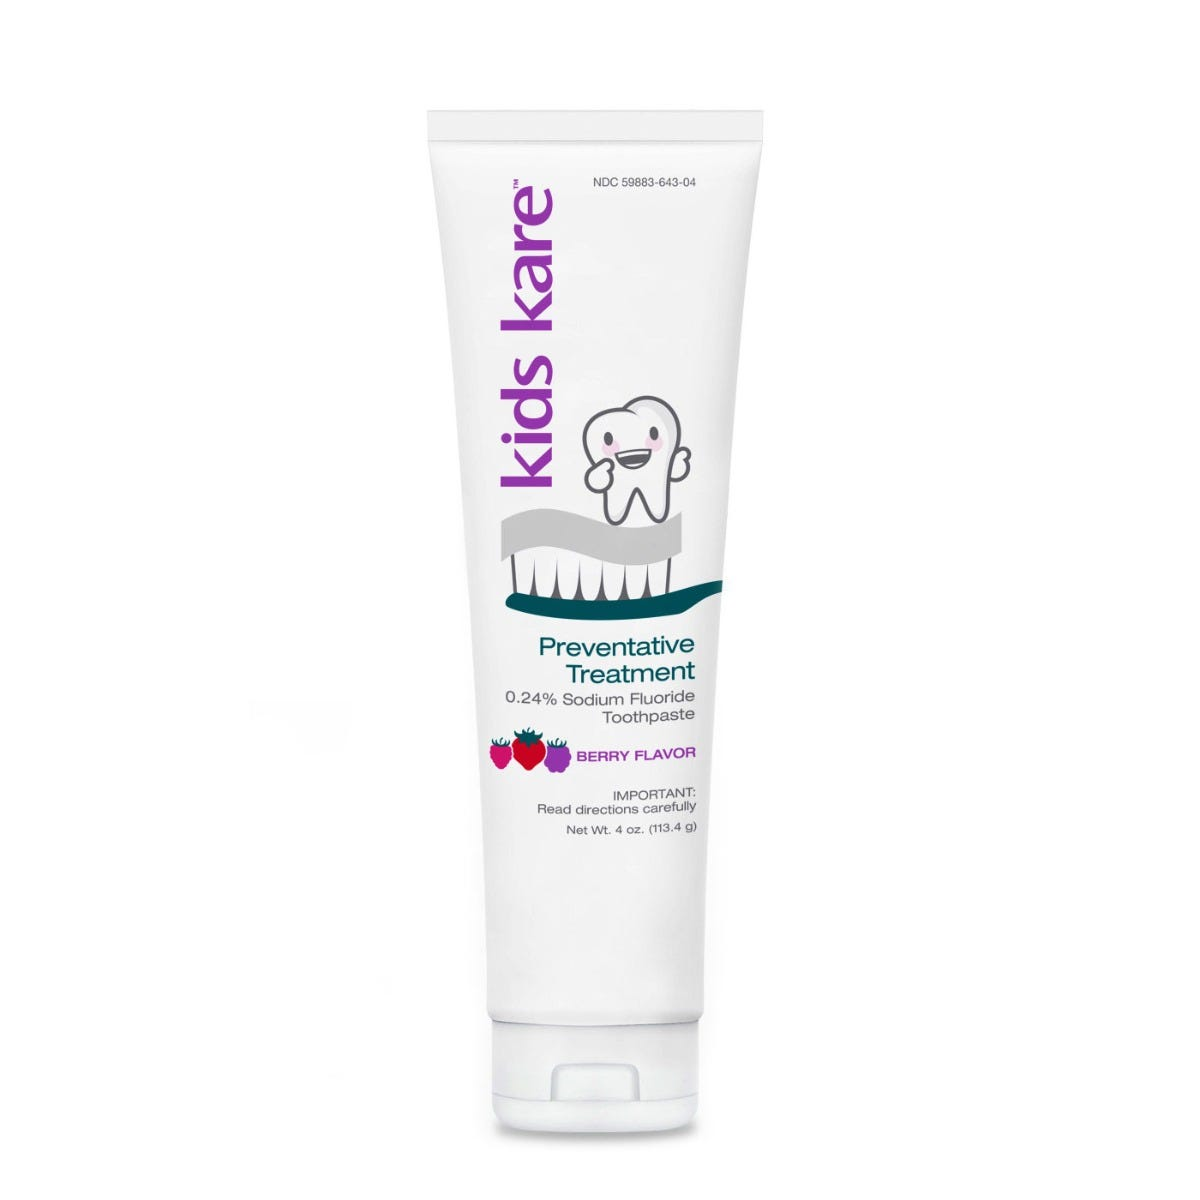 Kids Kare™ 0.24% Neutral Sodium Fluoride Toothpaste